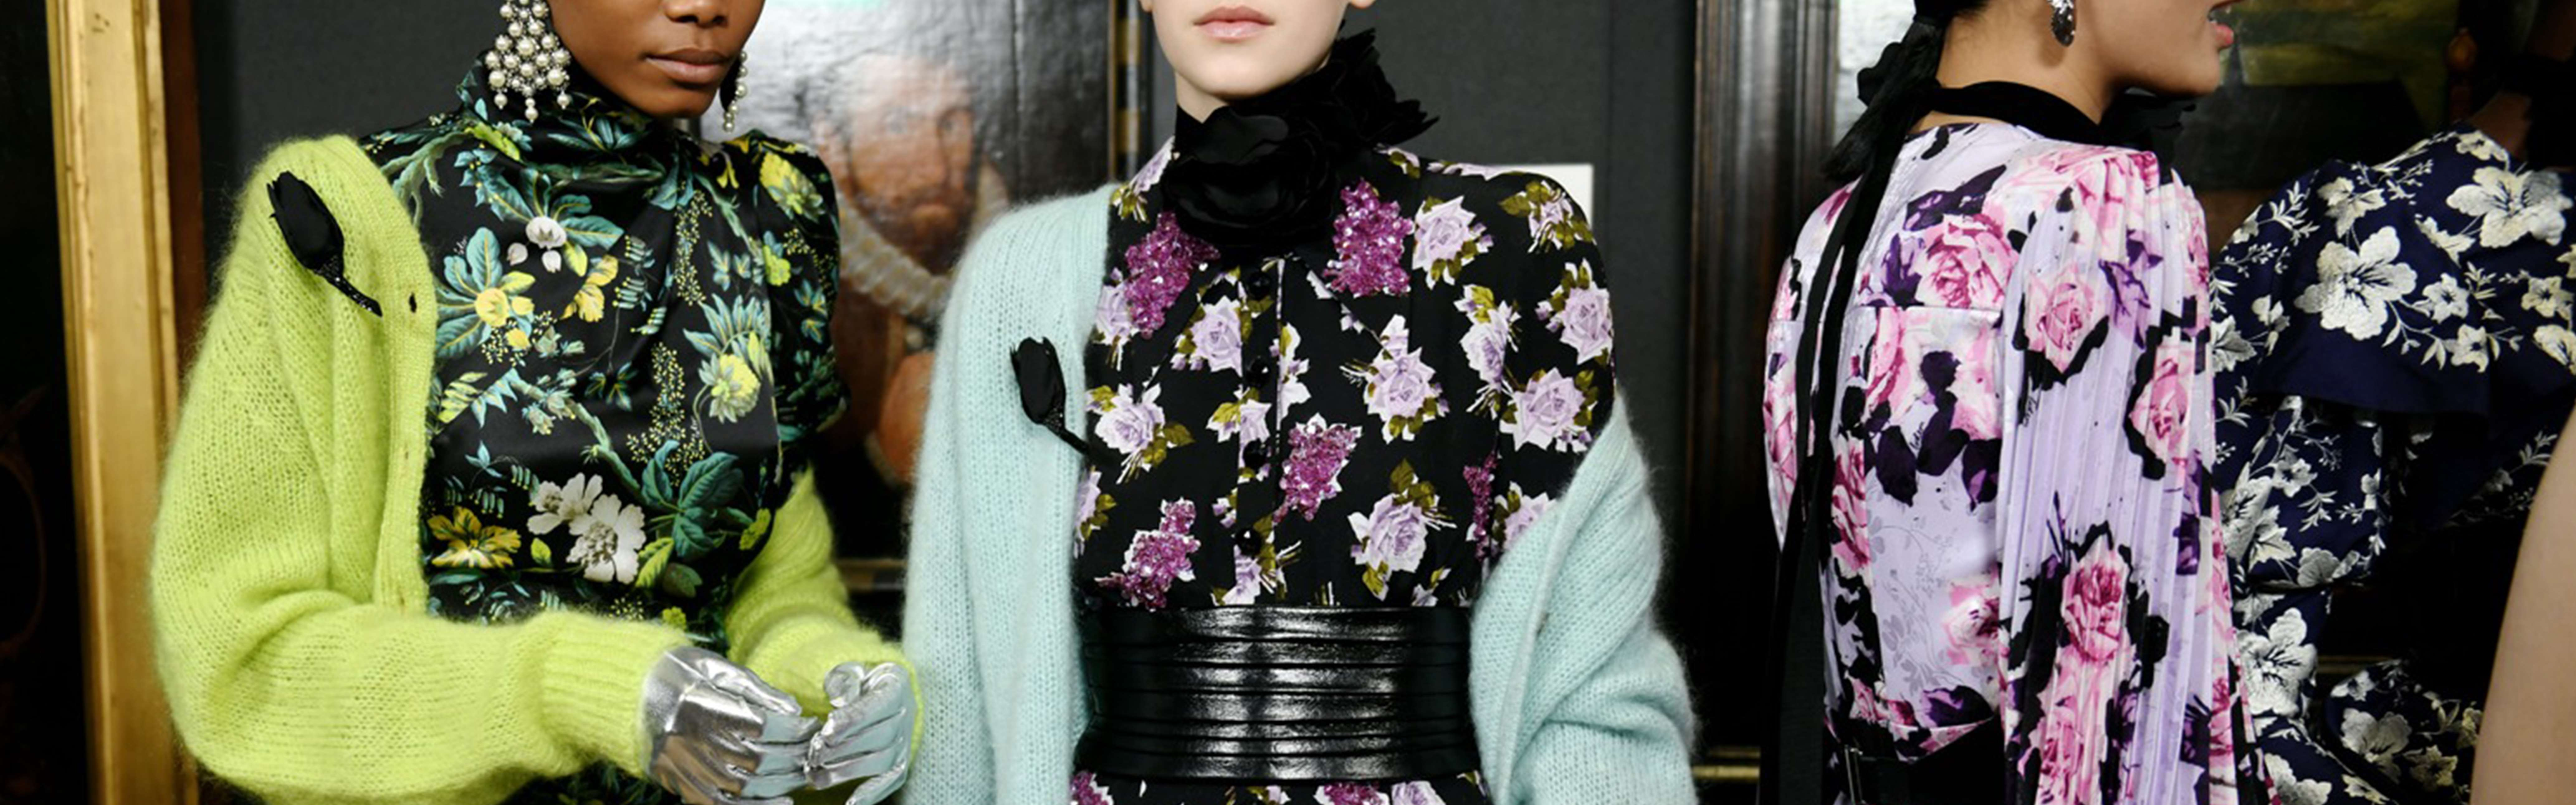 Models in ERDEM luxury floral dresses, powerful and beautiful pieces by the celebrated fashion designer.